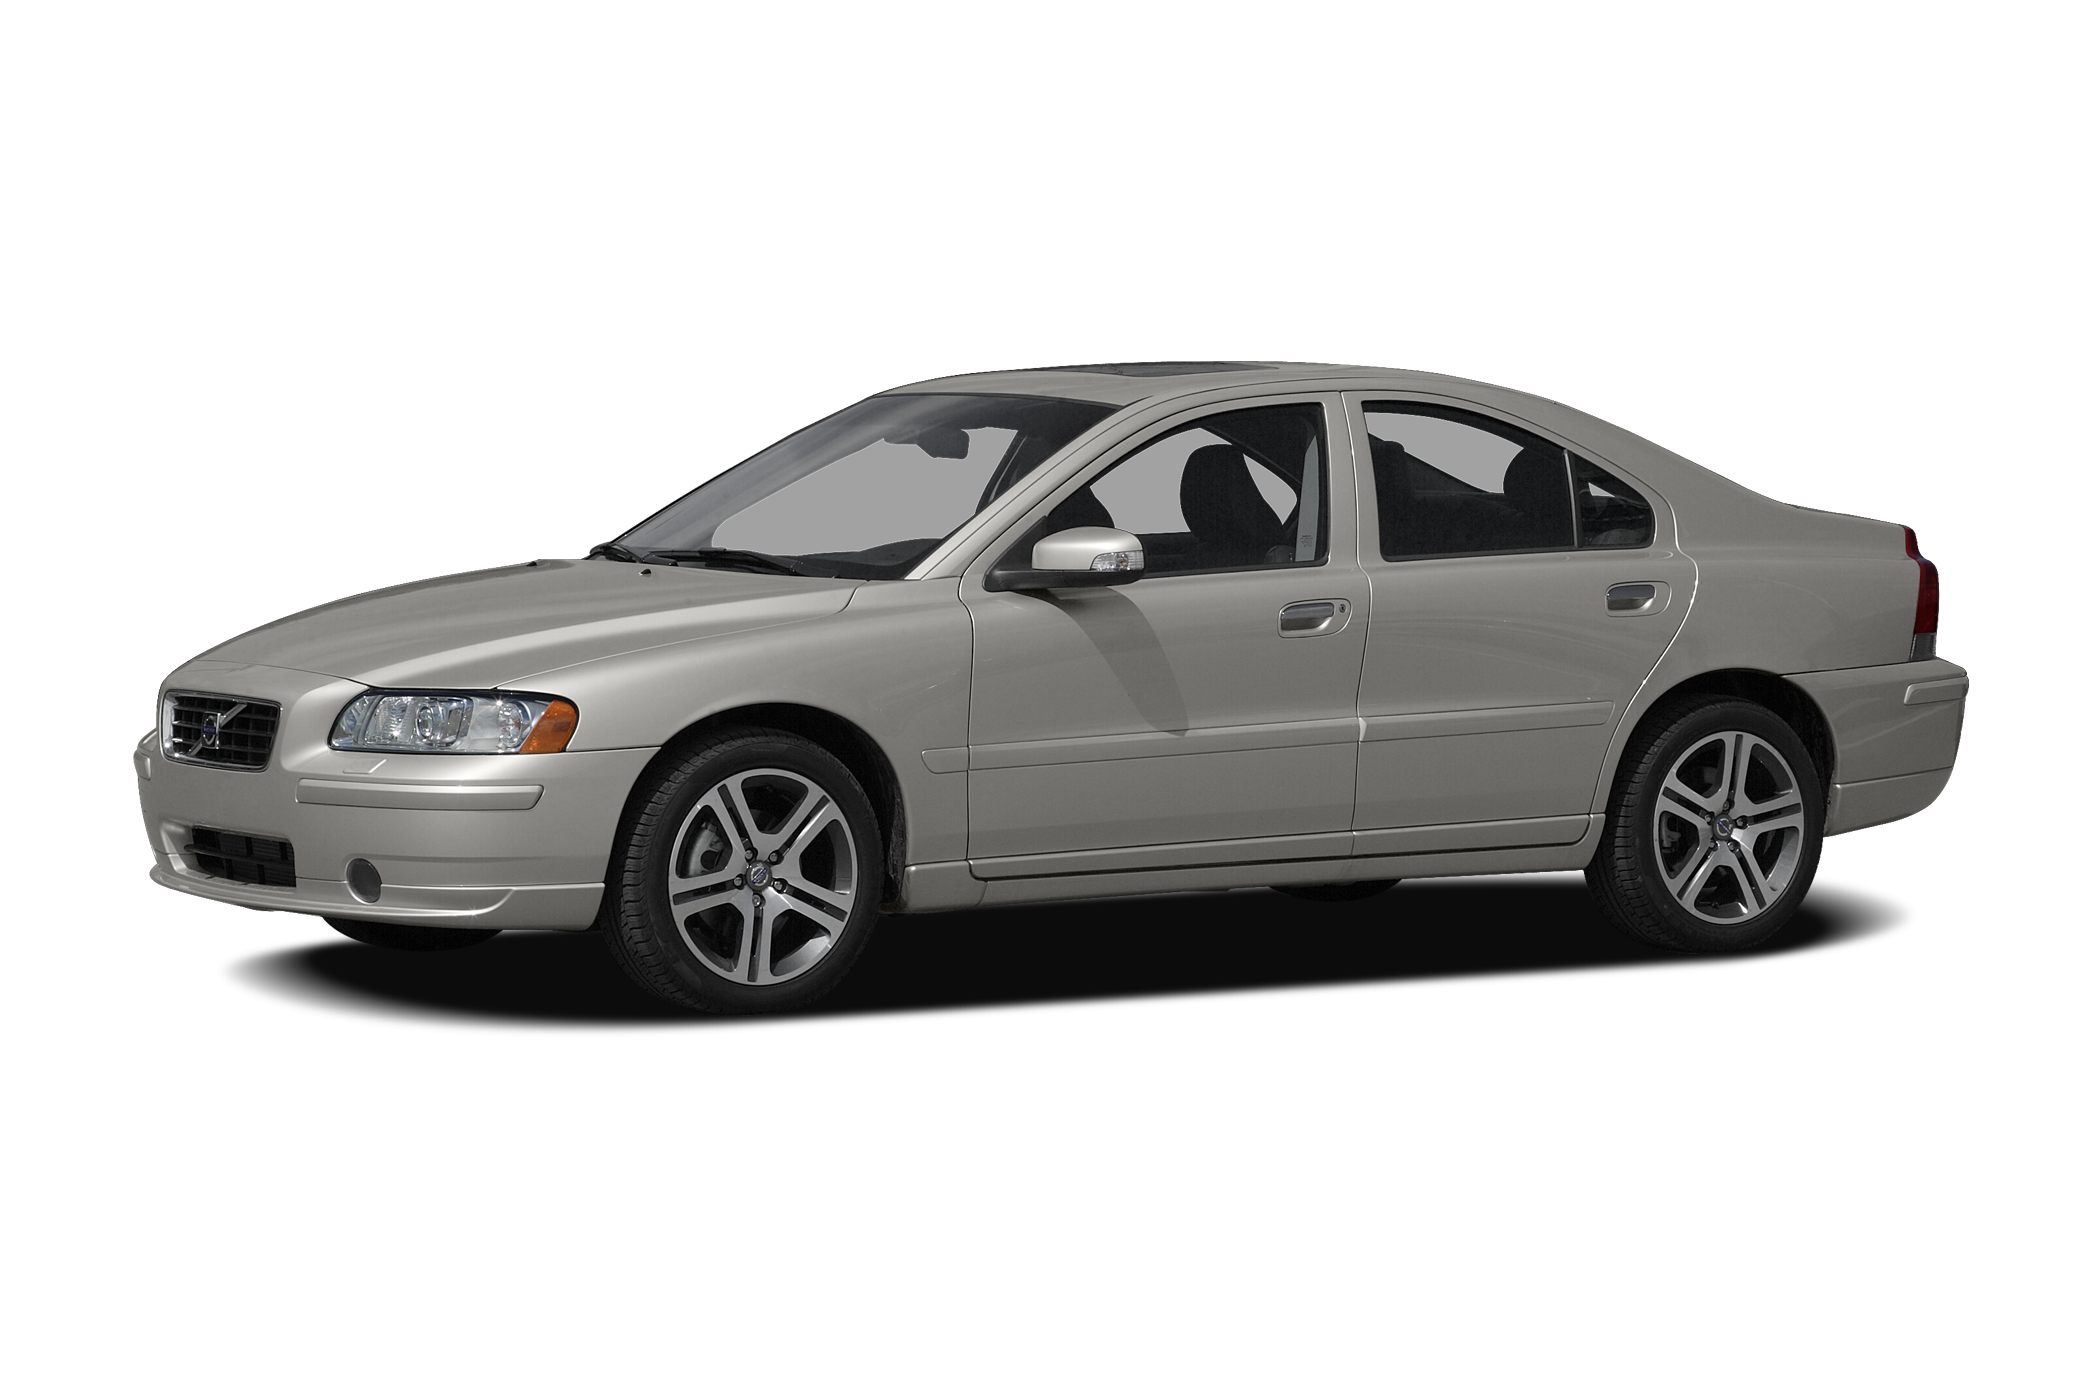 2008 Volvo S60 2.5T Sedan for sale in Northborough for $14,500 with 51,916 miles